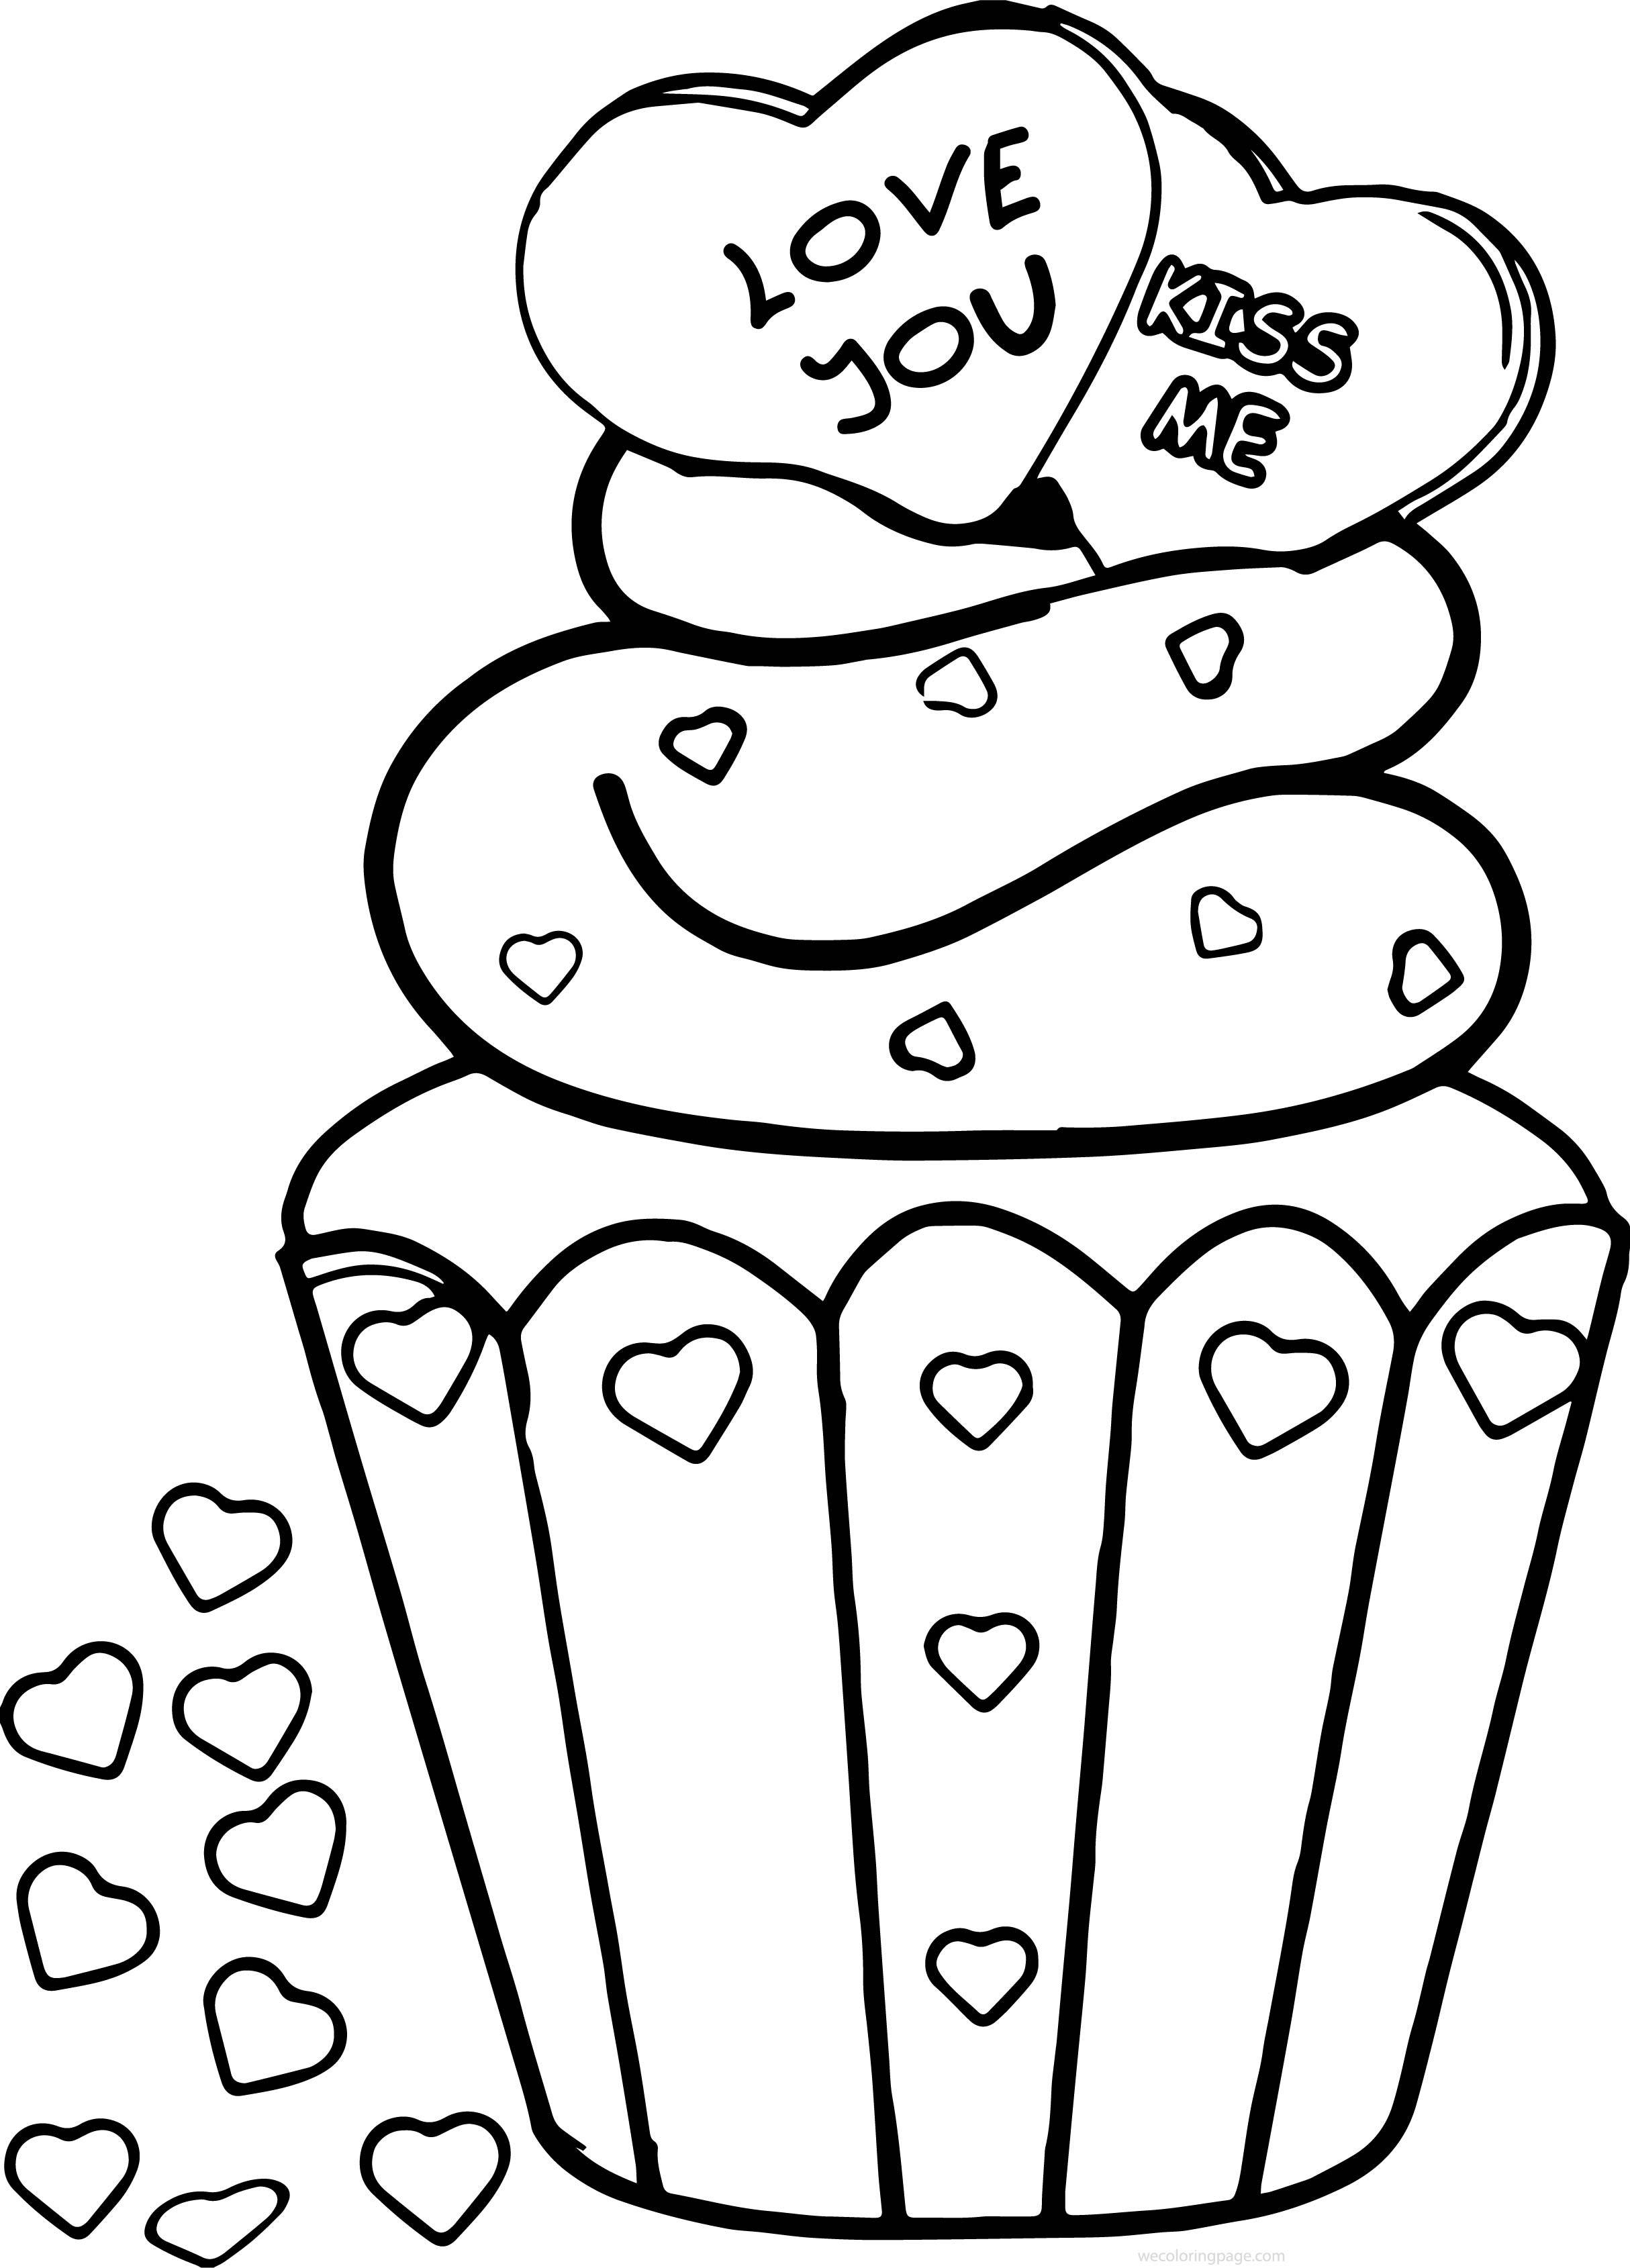 hearts and kisses coloring pages - photo#18